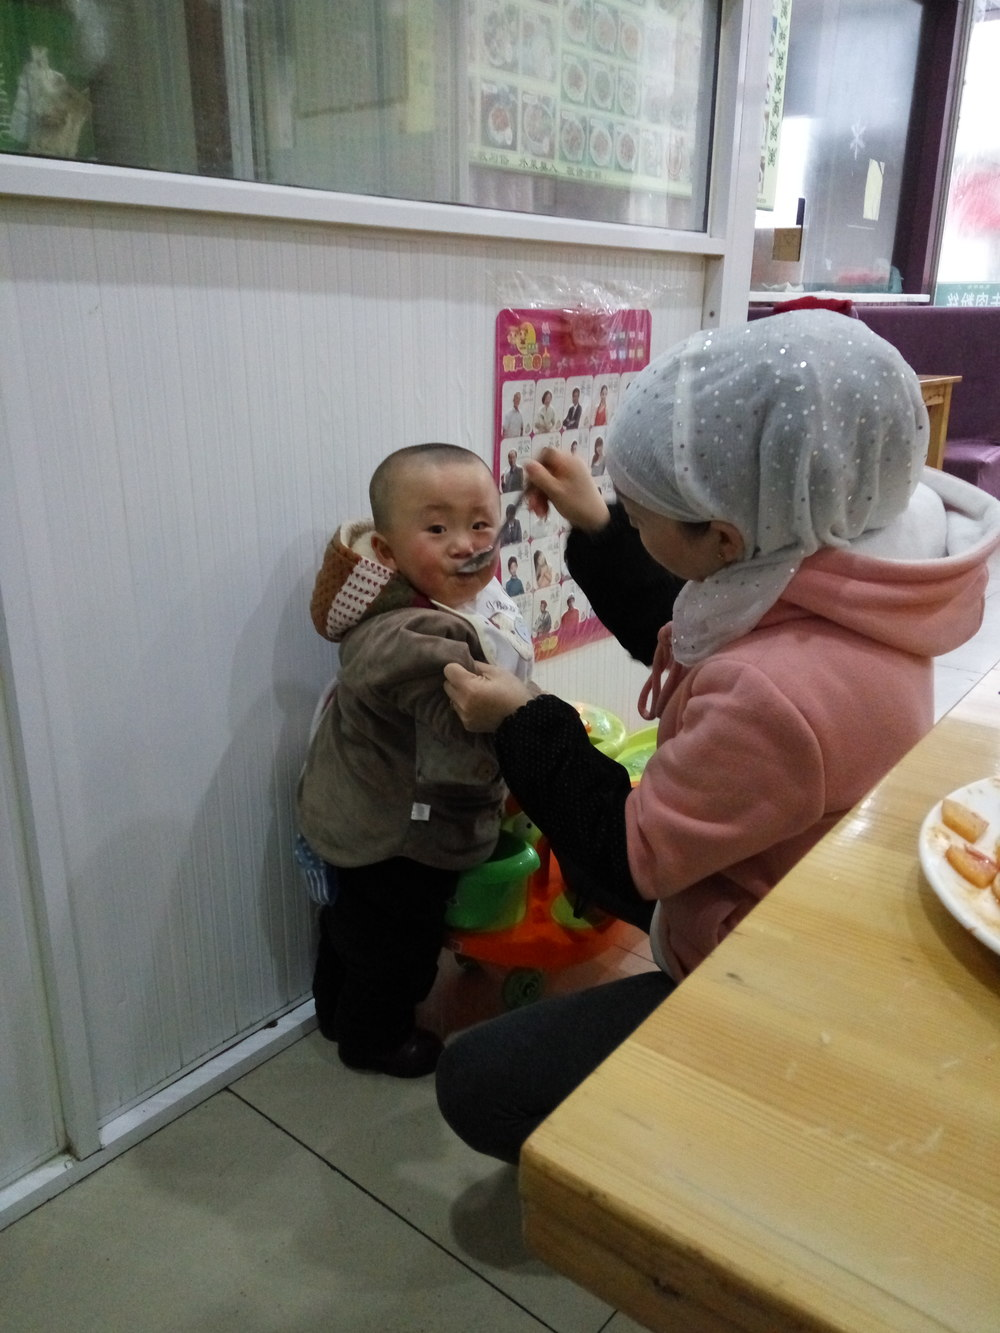 At another Muslim restaurant I watch a young mother wrangle in her son for dinner time.